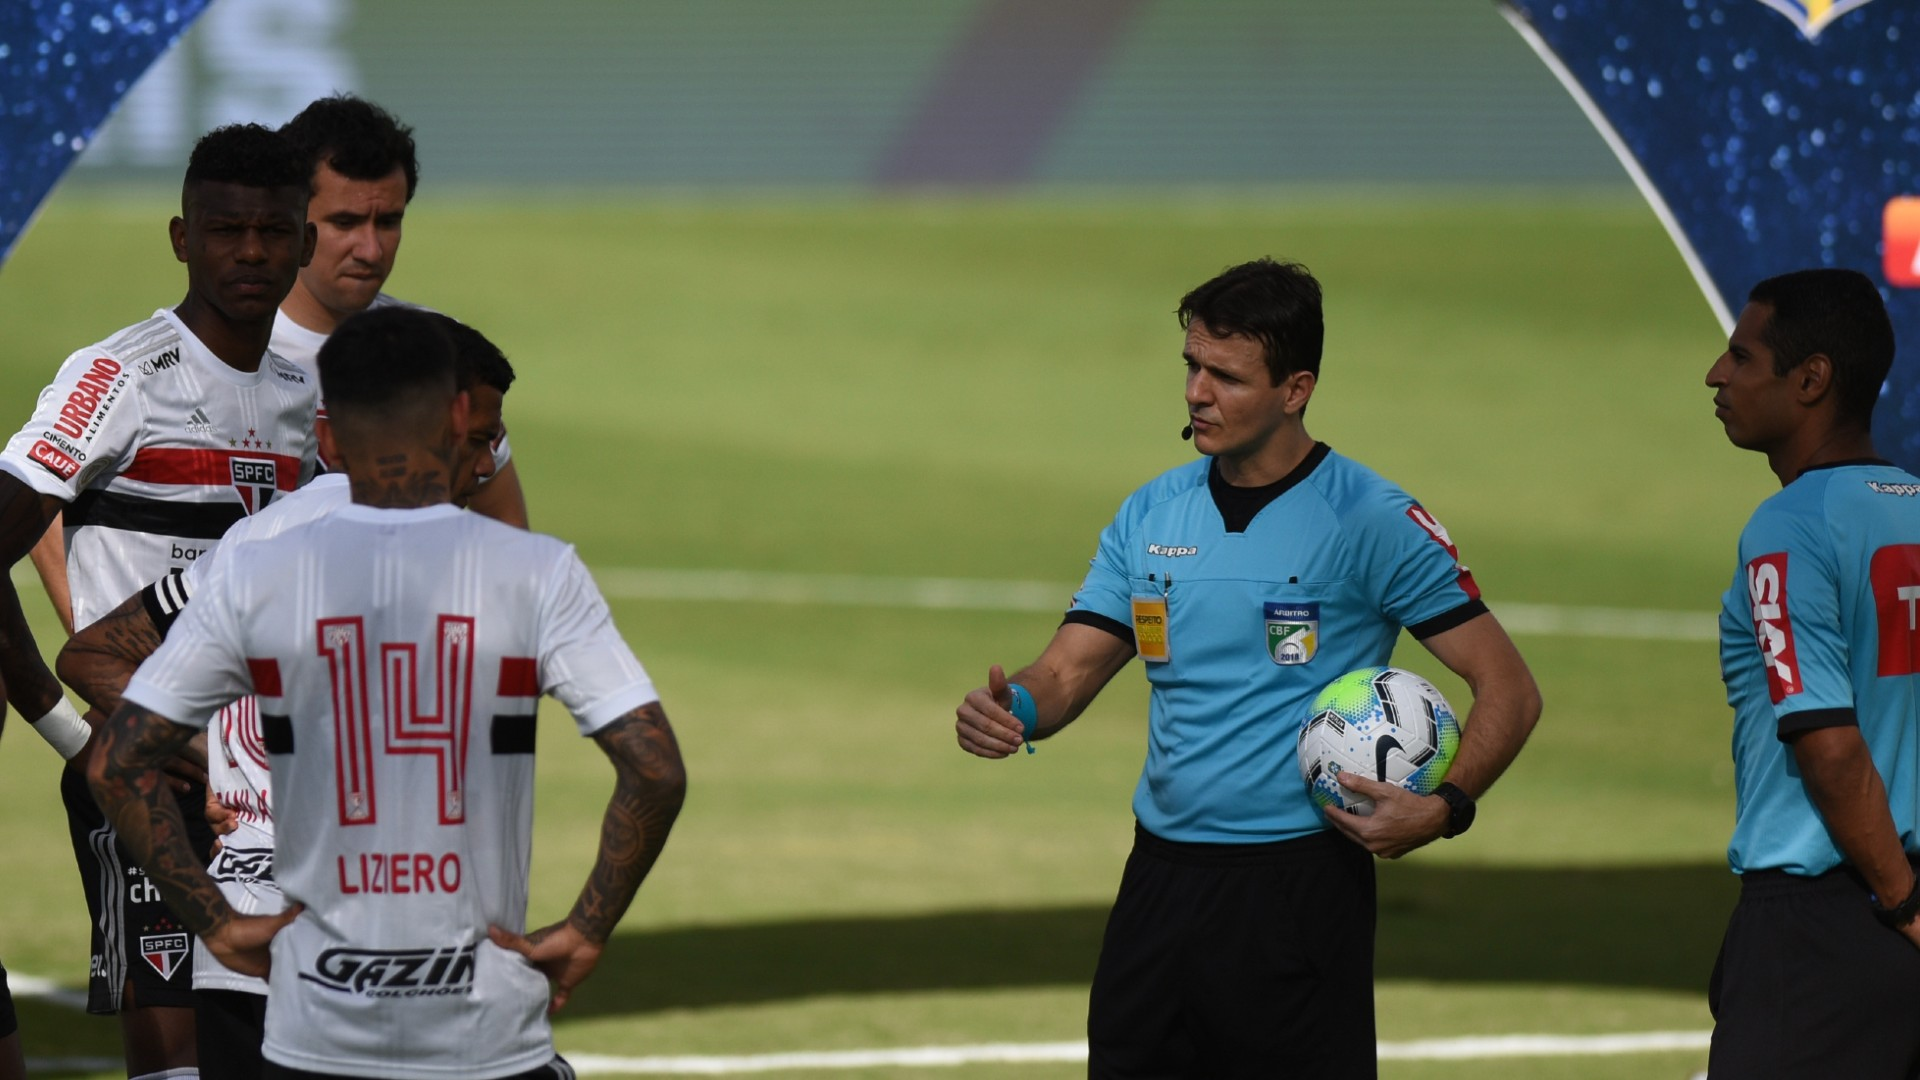 Brazilian game postponed moments before kick-off after 10 players test positive for coronavirus